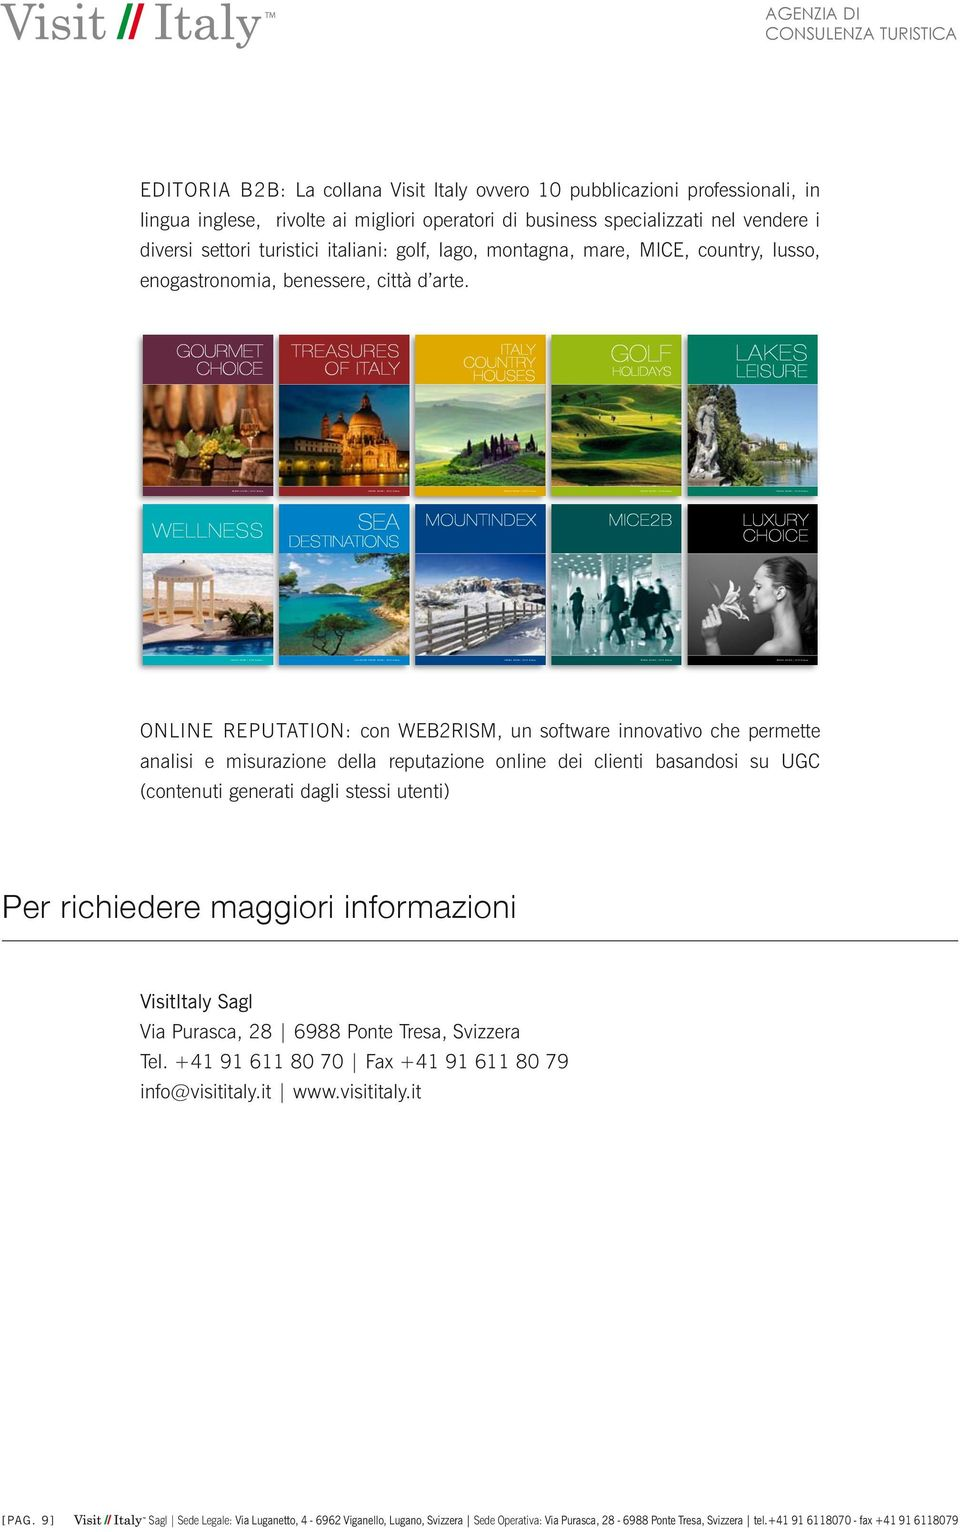 Gourmet choice treasures of italy italy country Houses Golf holidays lakes leisure wellness Sea destinations Mountindex mountindex 2012 edition Mice2b mountindex 2012 edition luxury choice ONLINE